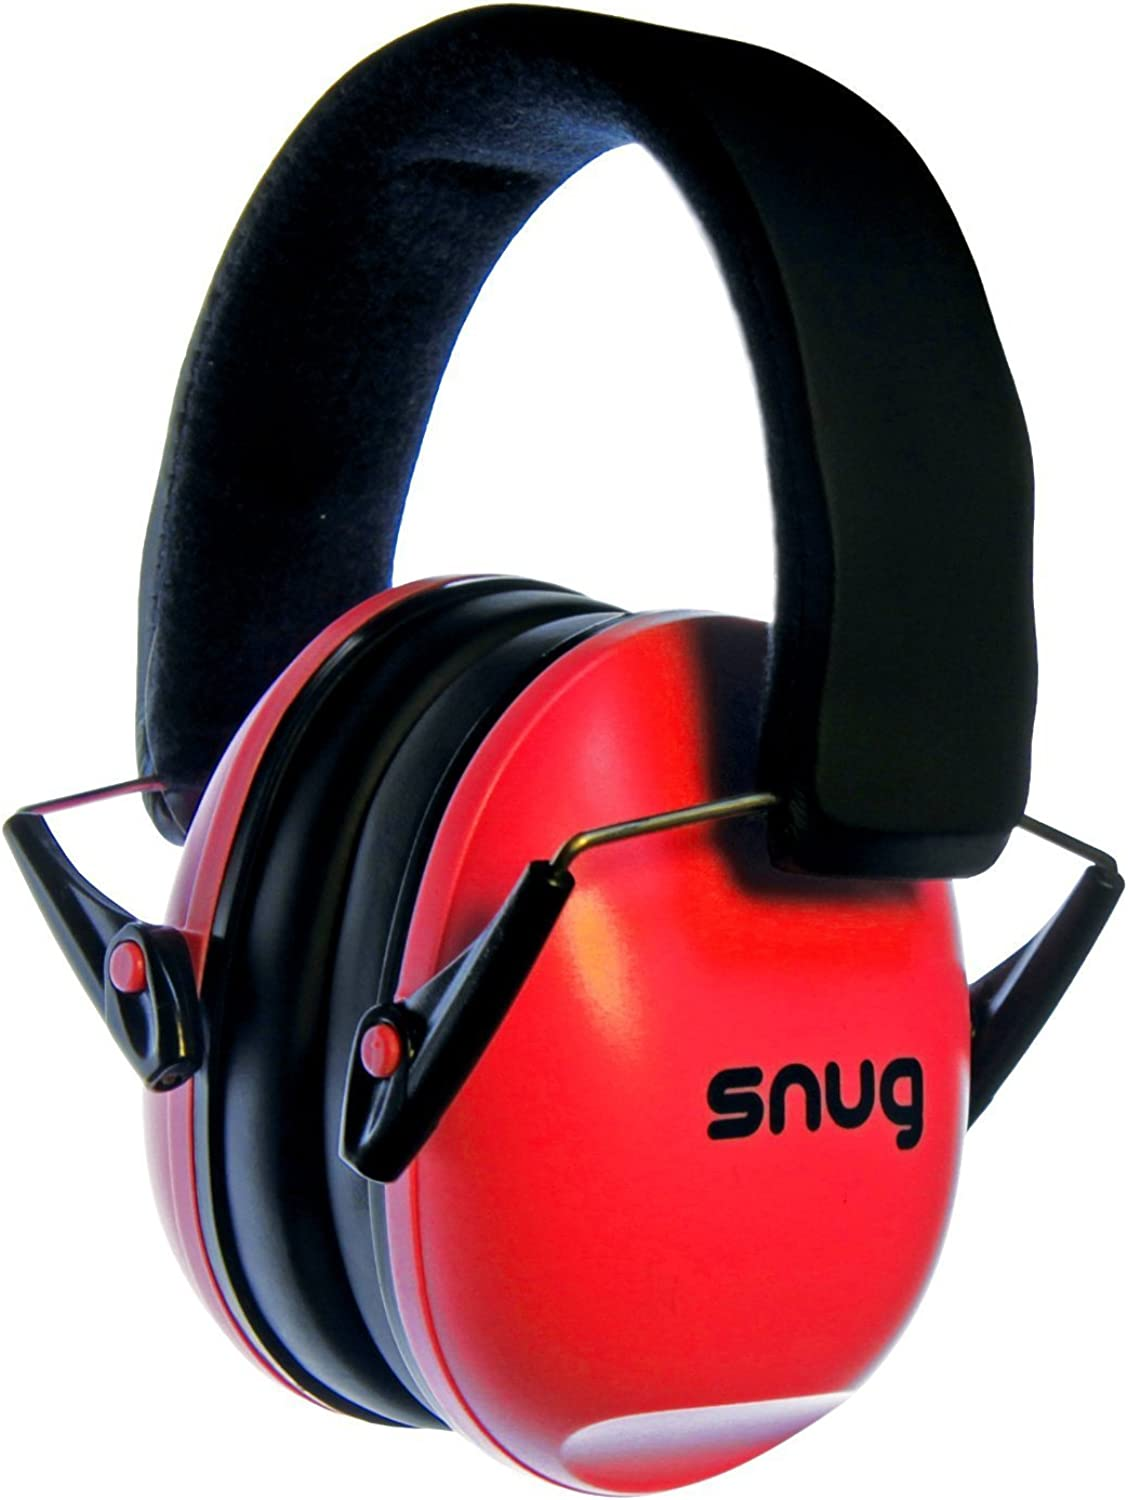 Snug Kids Popular brand in the world Ear Protection Special Campaign - Sound Earmuffs Noise Proof Cancelling